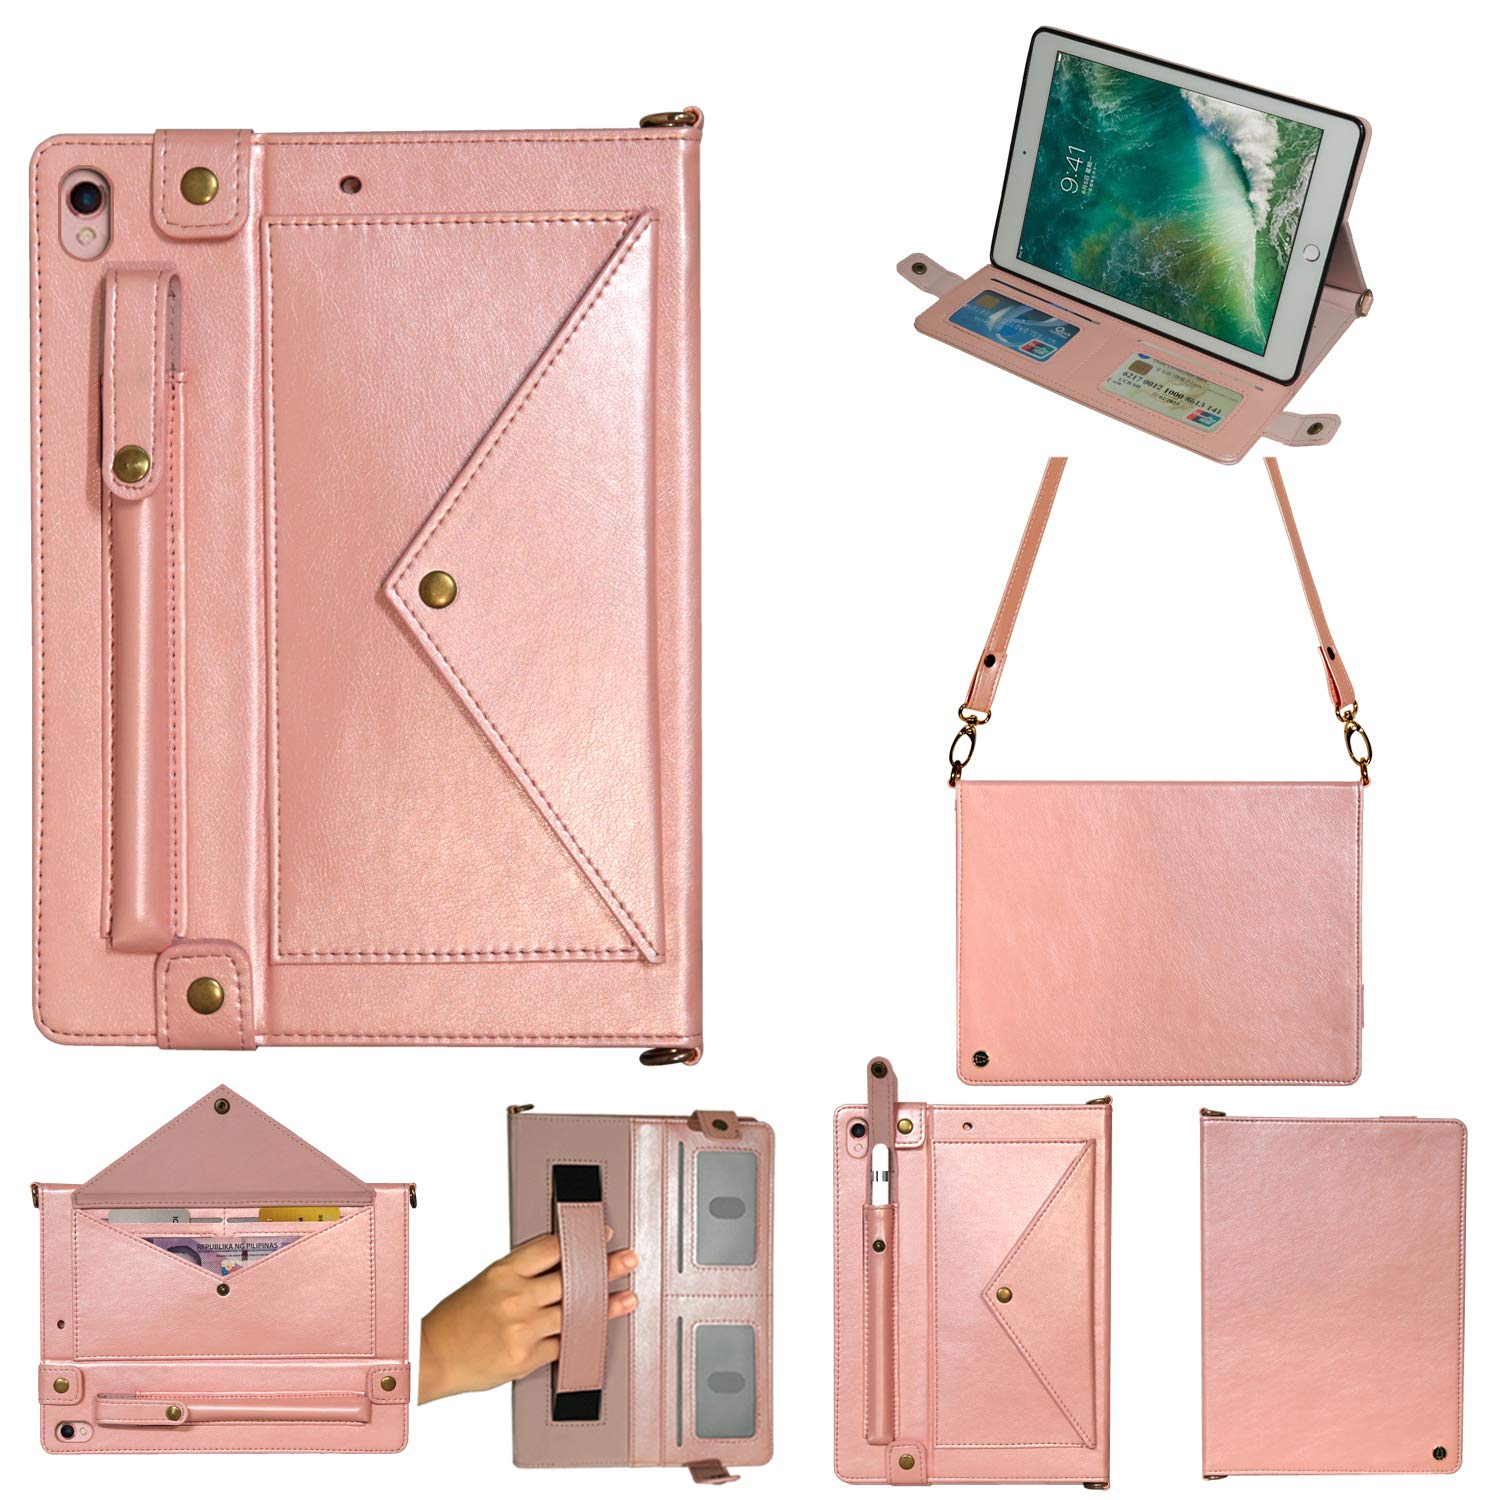 MeiLiio Folio Case for iPad Pro 10.5 Wallet File Folio Pocket PU Leather Hangbag Shell Magnetic Stand Multi Function Sleeve with Hand Strap Protective Cover for iPad Air 3 Women&Girl (Rose Gold) by MeiLiio